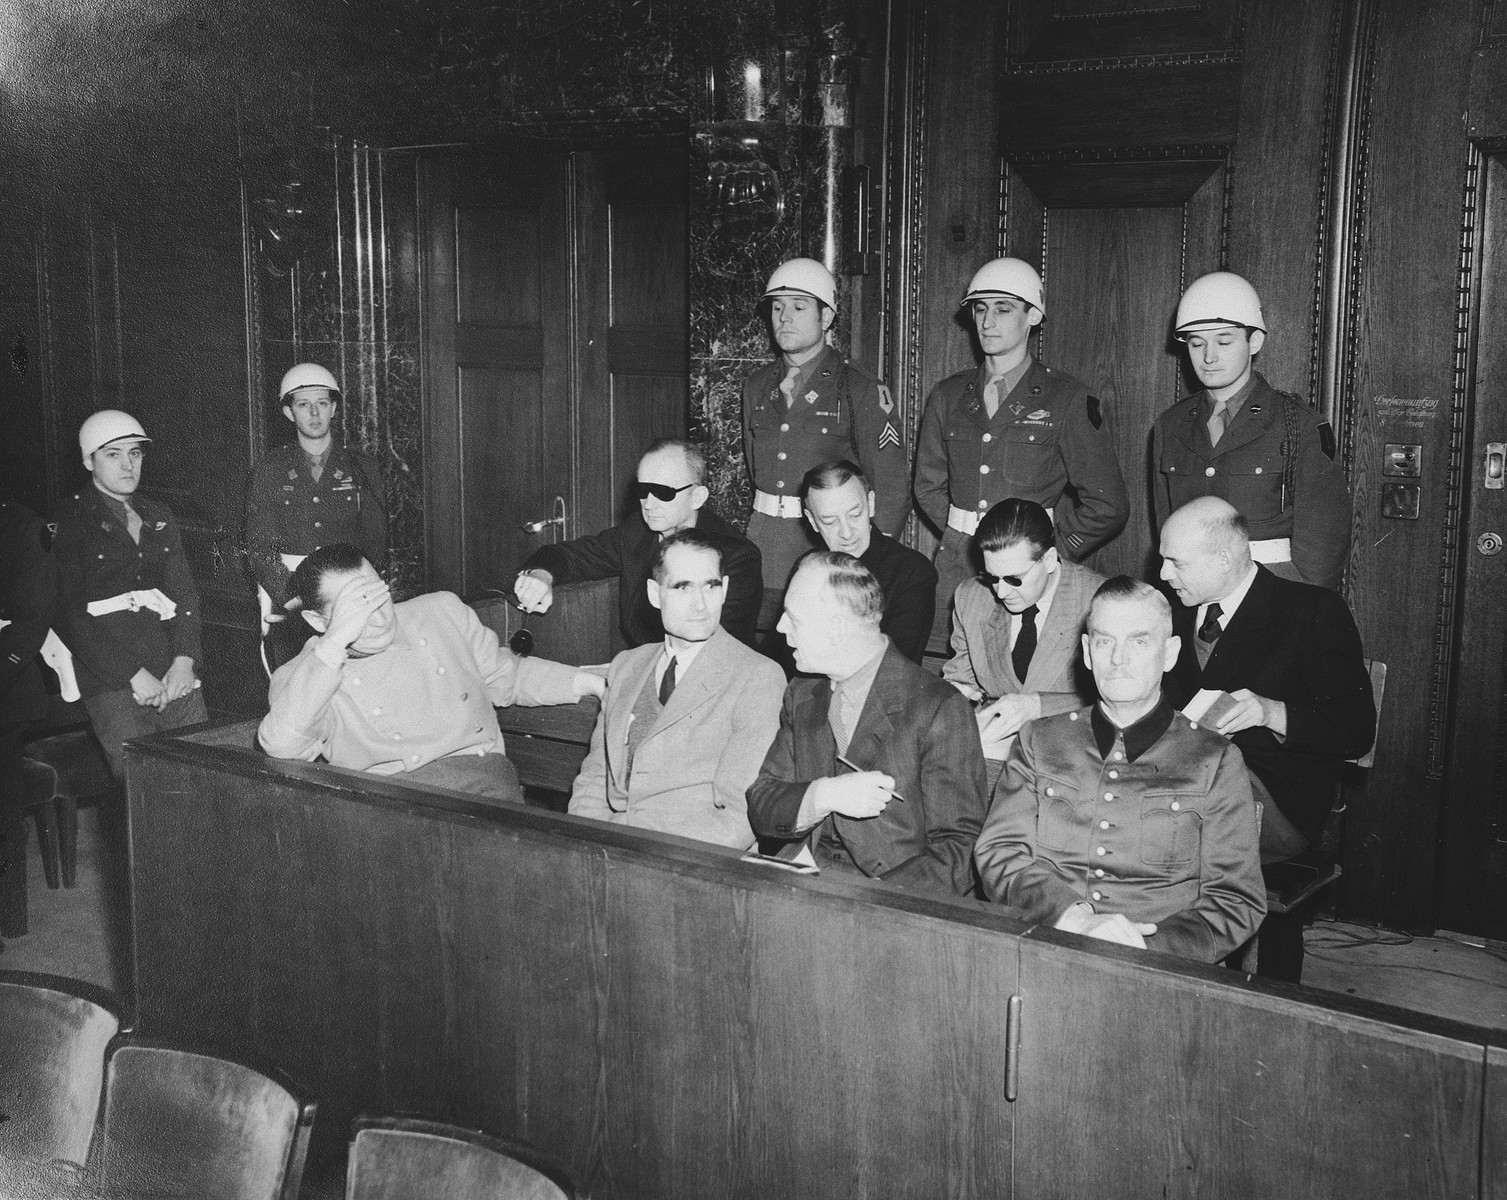 The defendants in the dock at the International Military Tribunal trial of war criminals at Nuremberg.